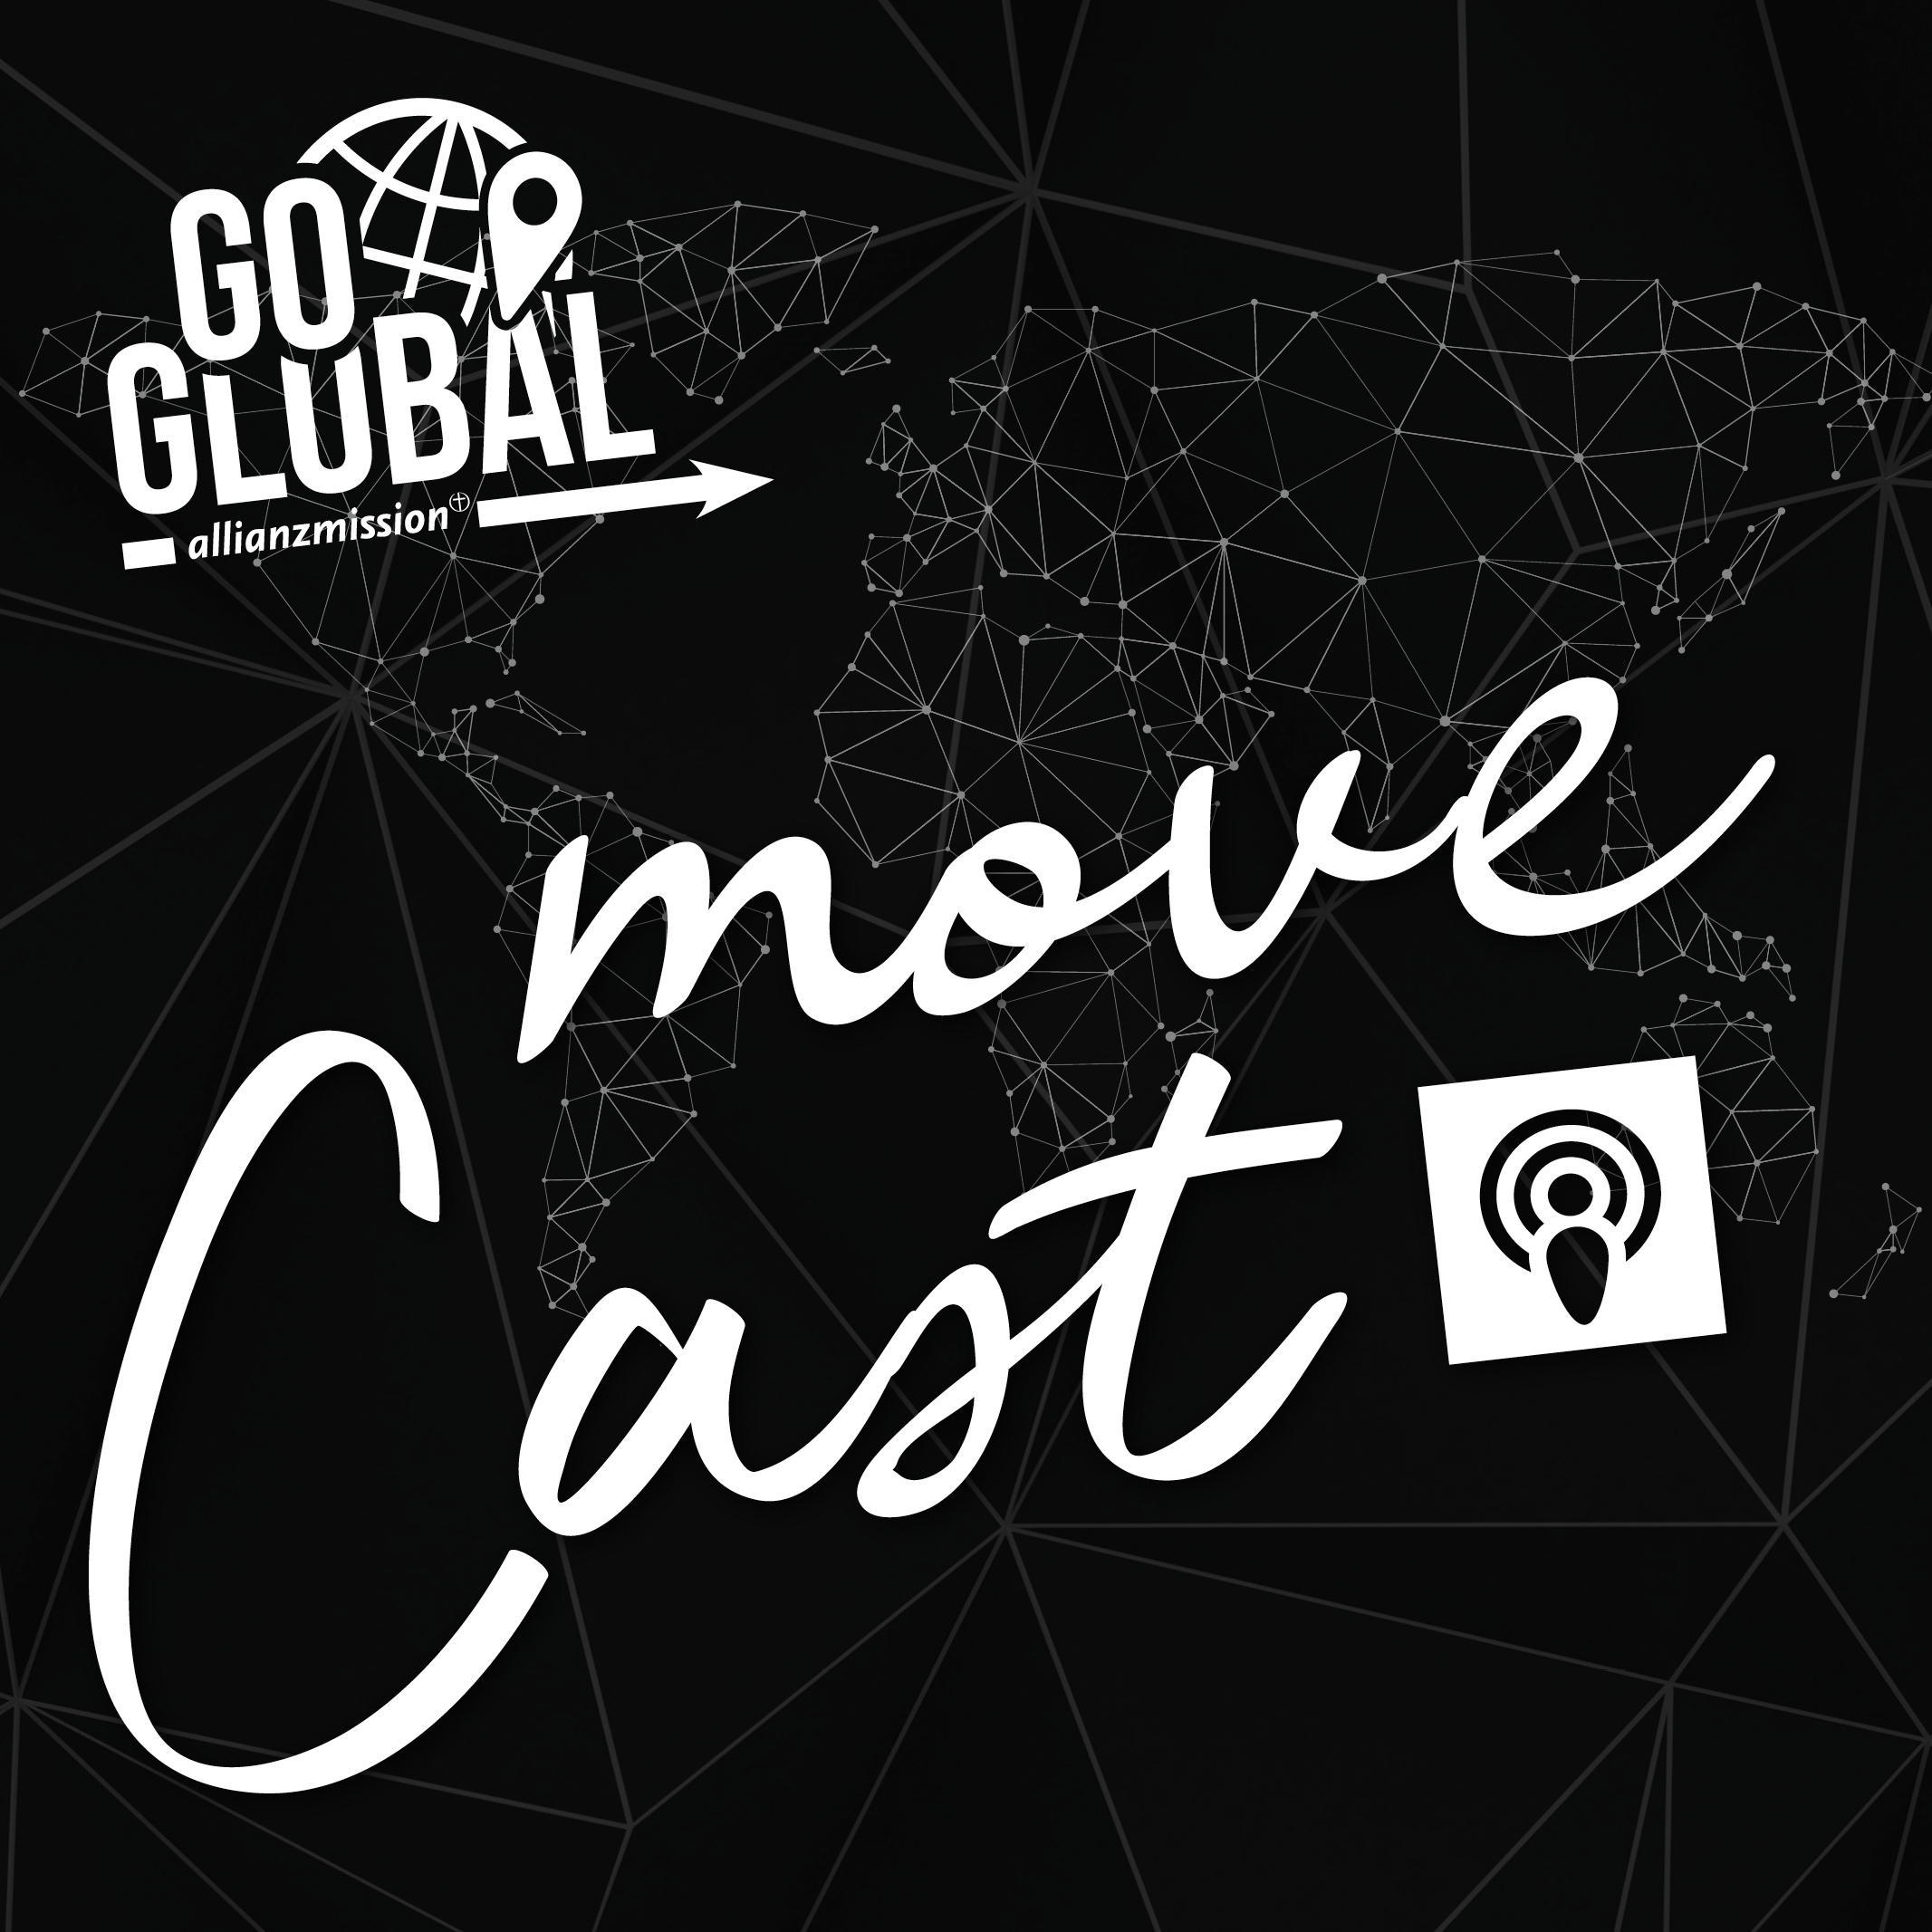 moveCast - GoGlobal by Allianz-Mission